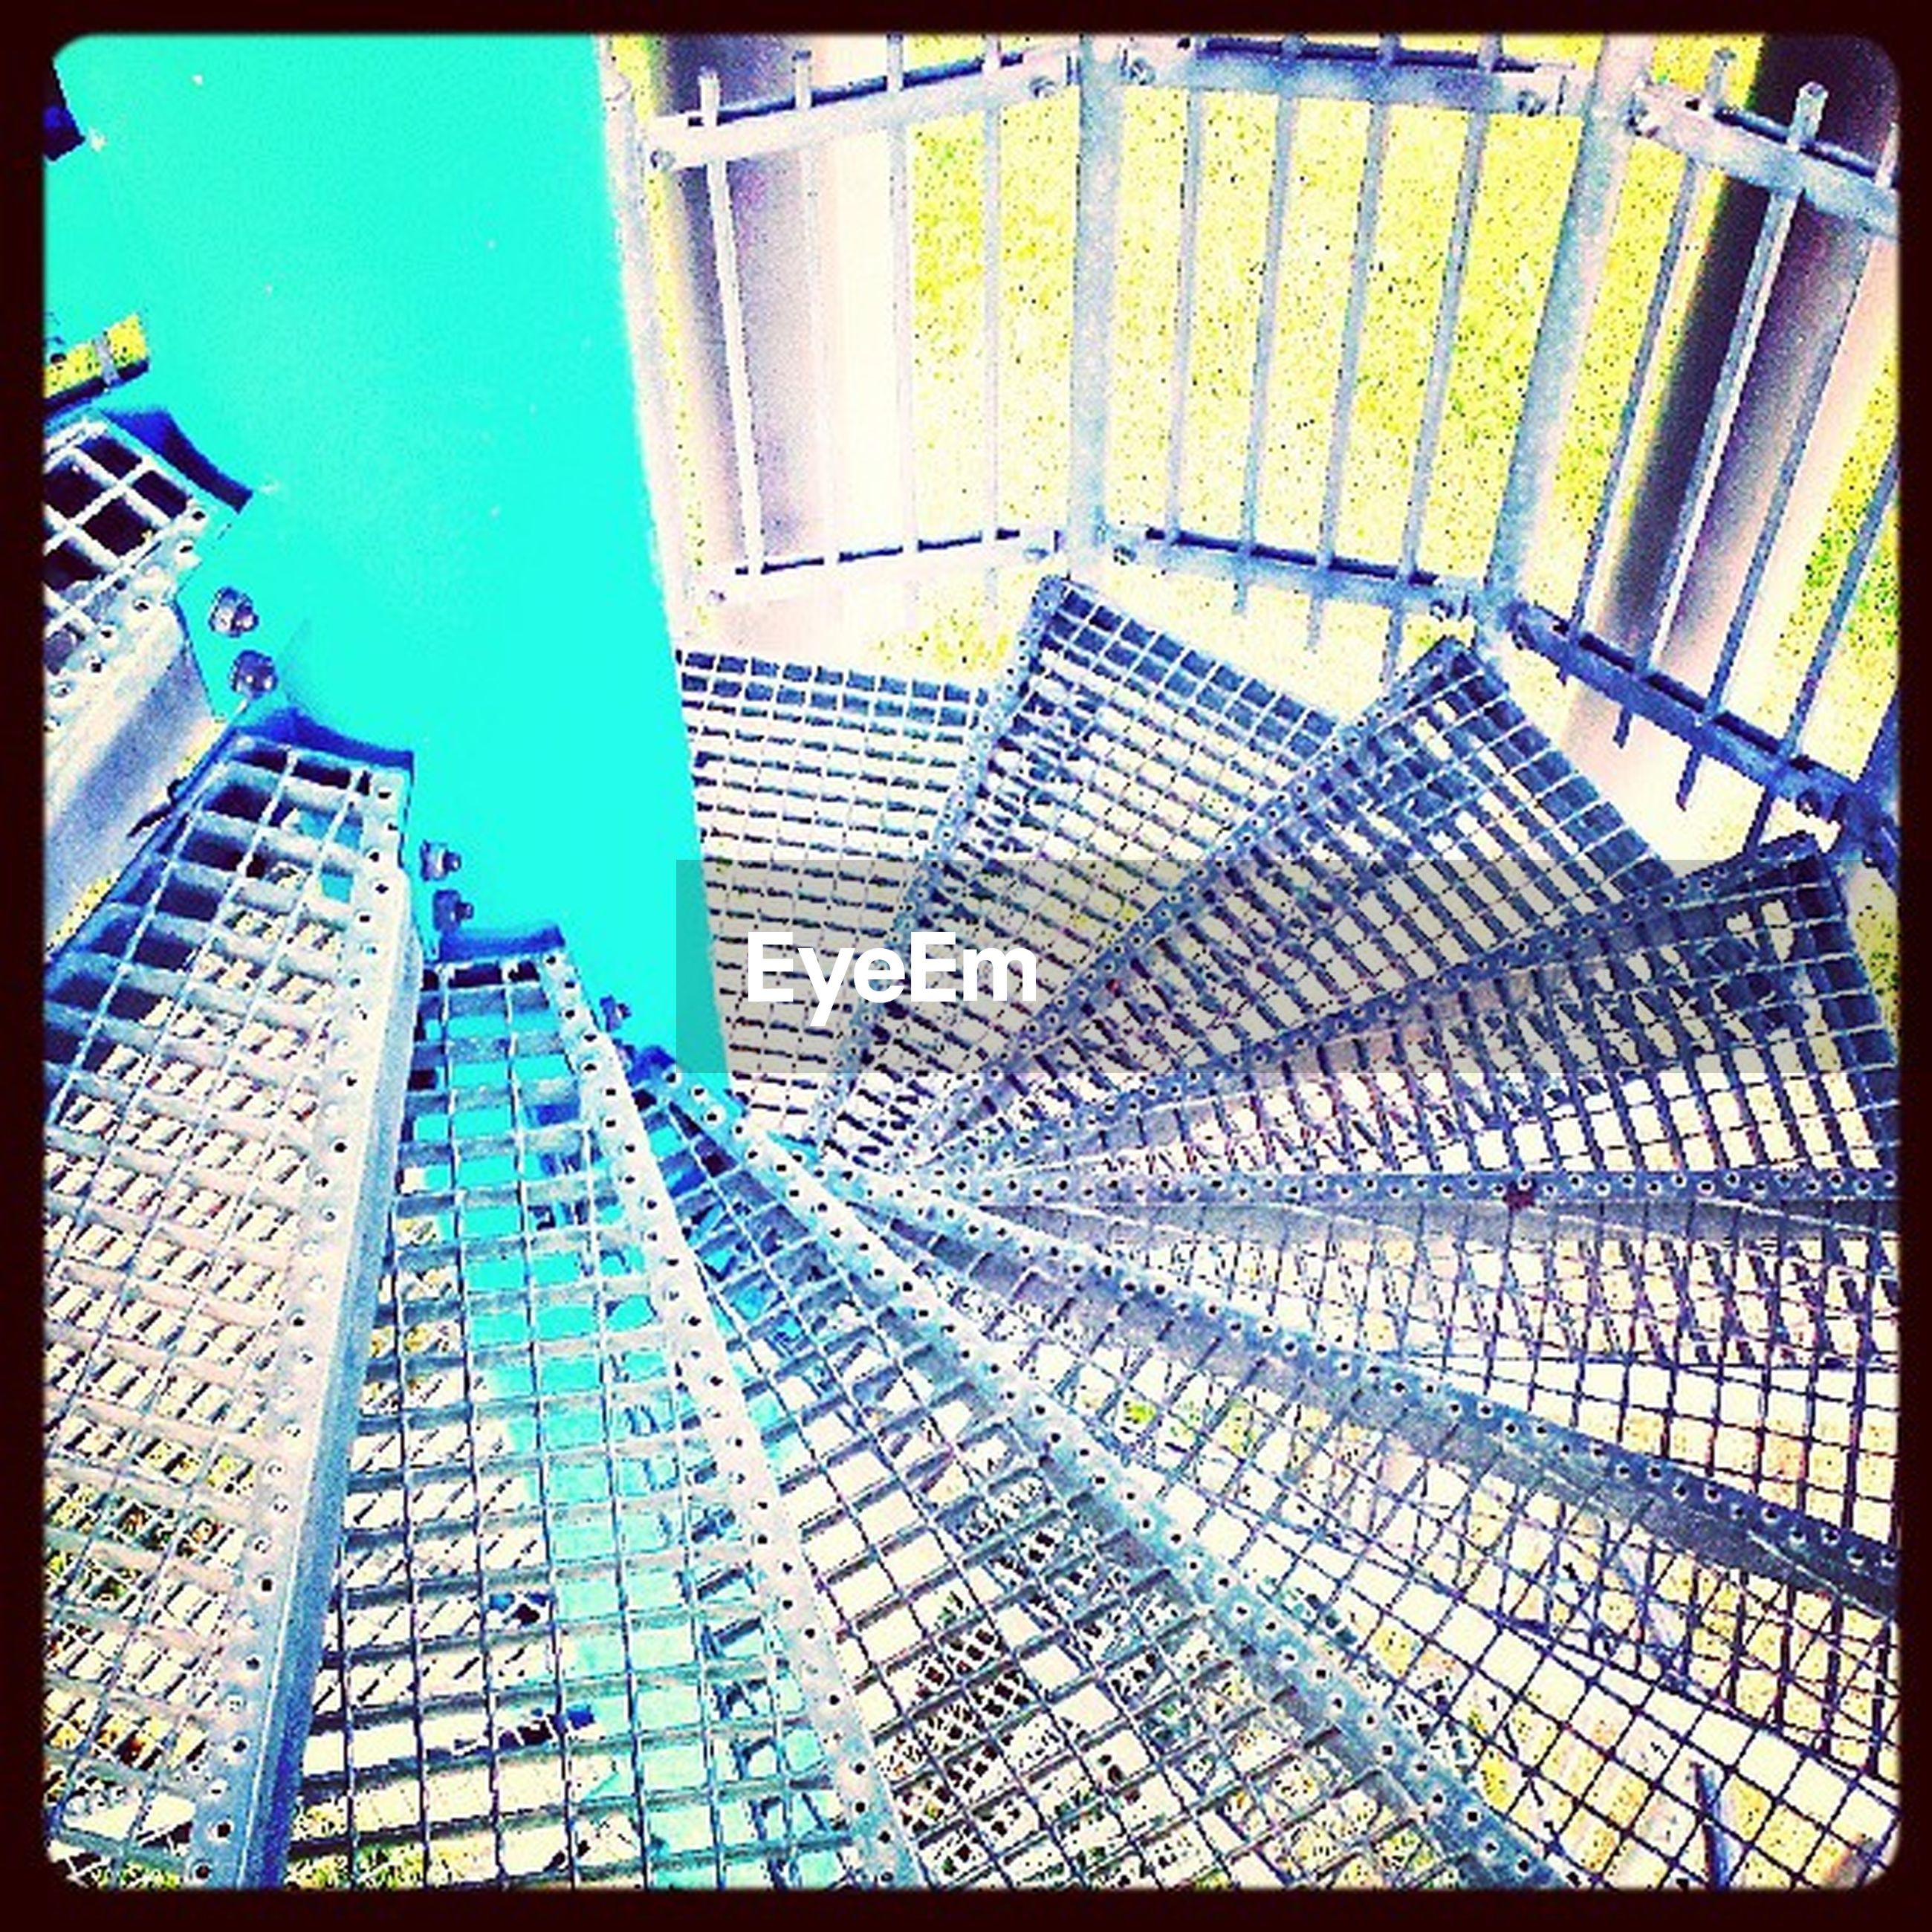 transfer print, auto post production filter, blue, built structure, architecture, sunlight, pattern, shadow, clear sky, building exterior, day, indoors, glass - material, low angle view, railing, modern, steps, geometric shape, tiled floor